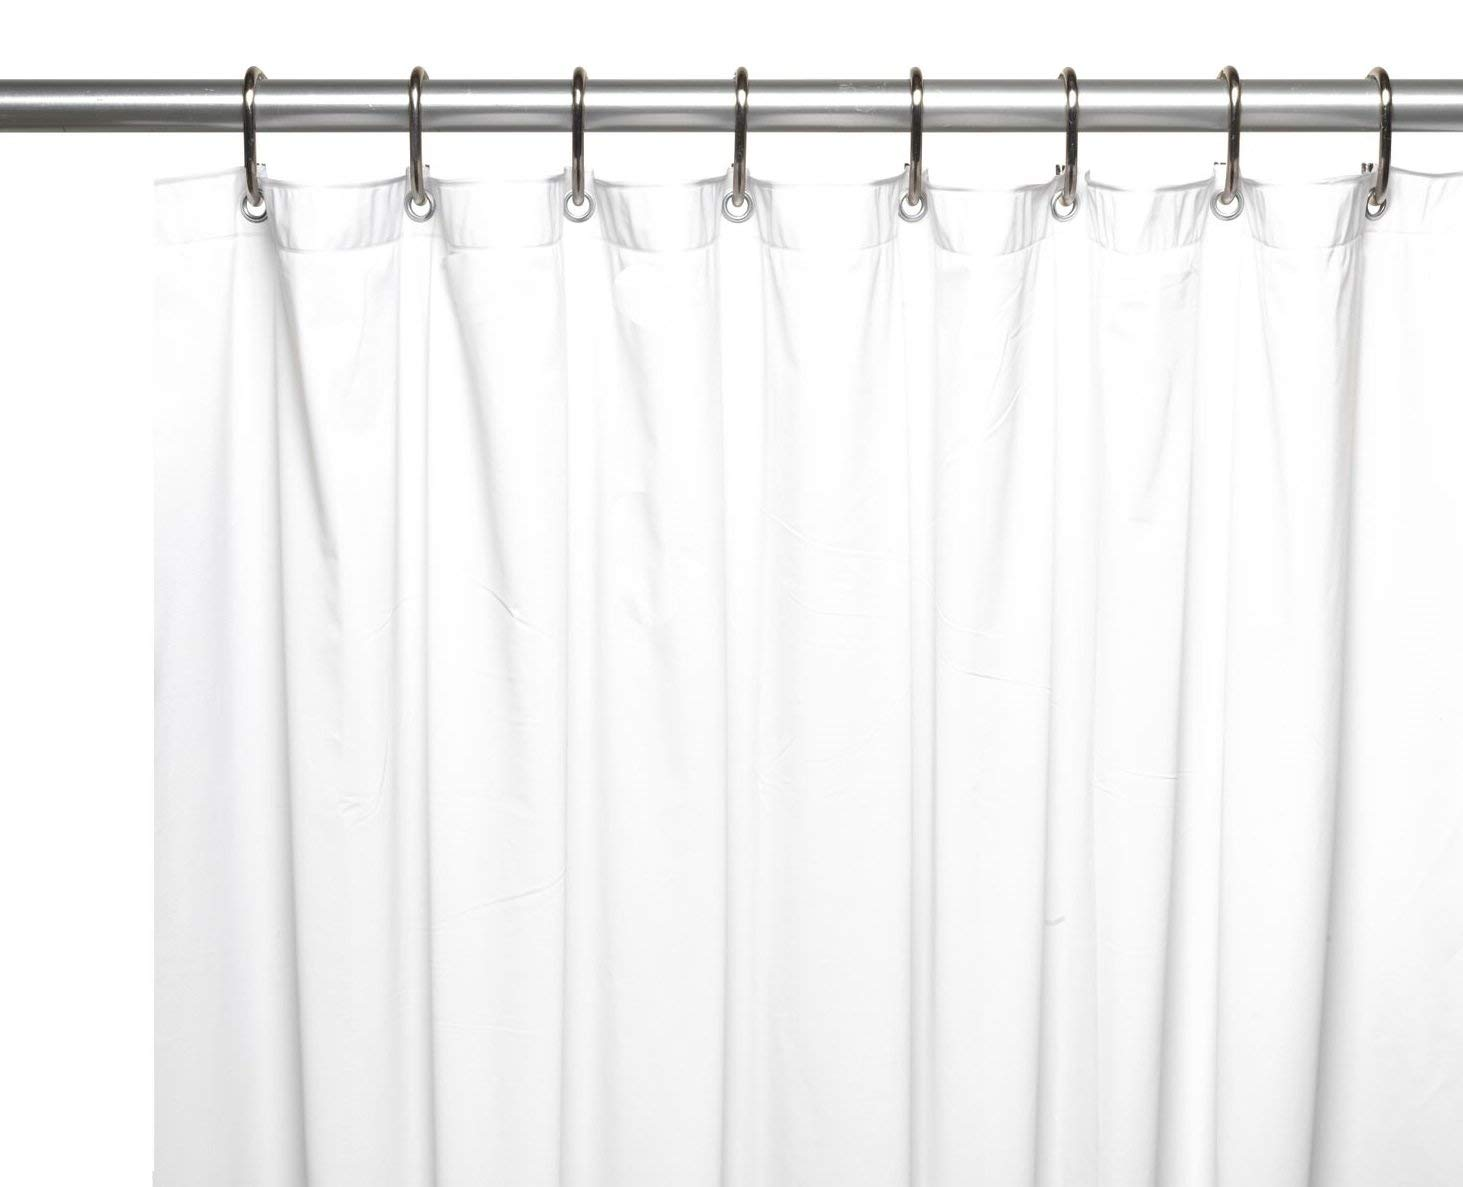 Get Quotations Royal Bath Extra Wide 5 Gauge Vinyl Shower Curtain Liner With Metal Grommets In White